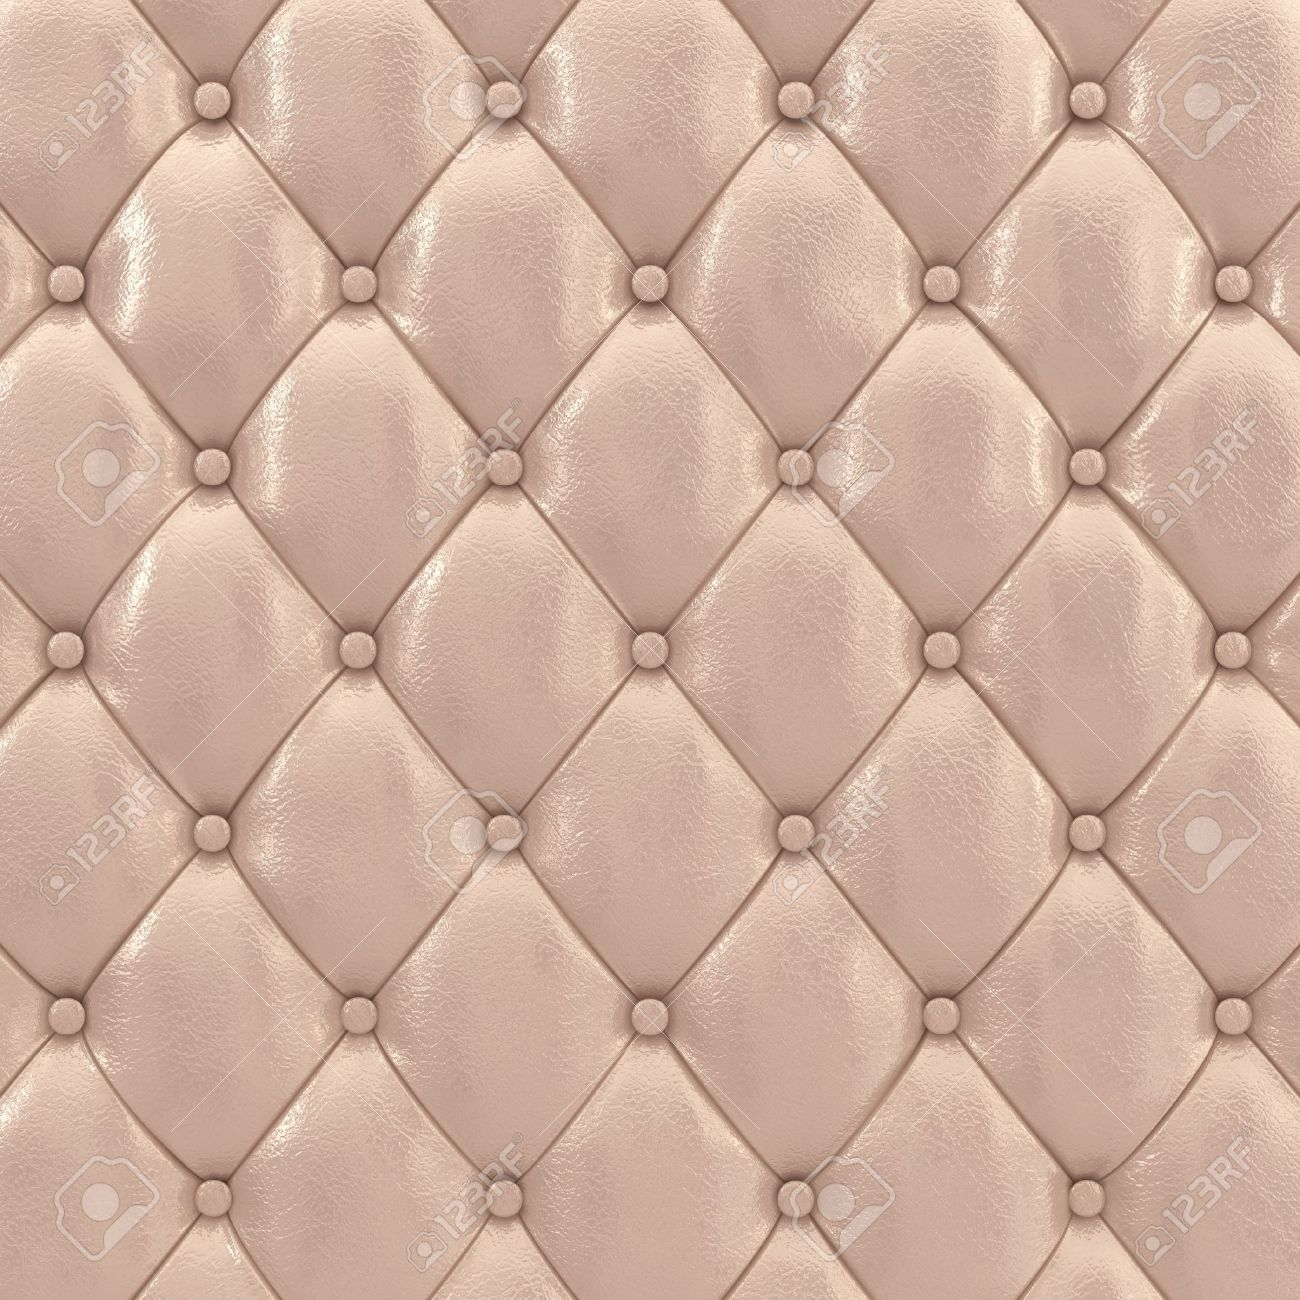 Leather cushion texture - Beige Leather Upholstery Pattern 3d Illustration Stock Illustration 10606309